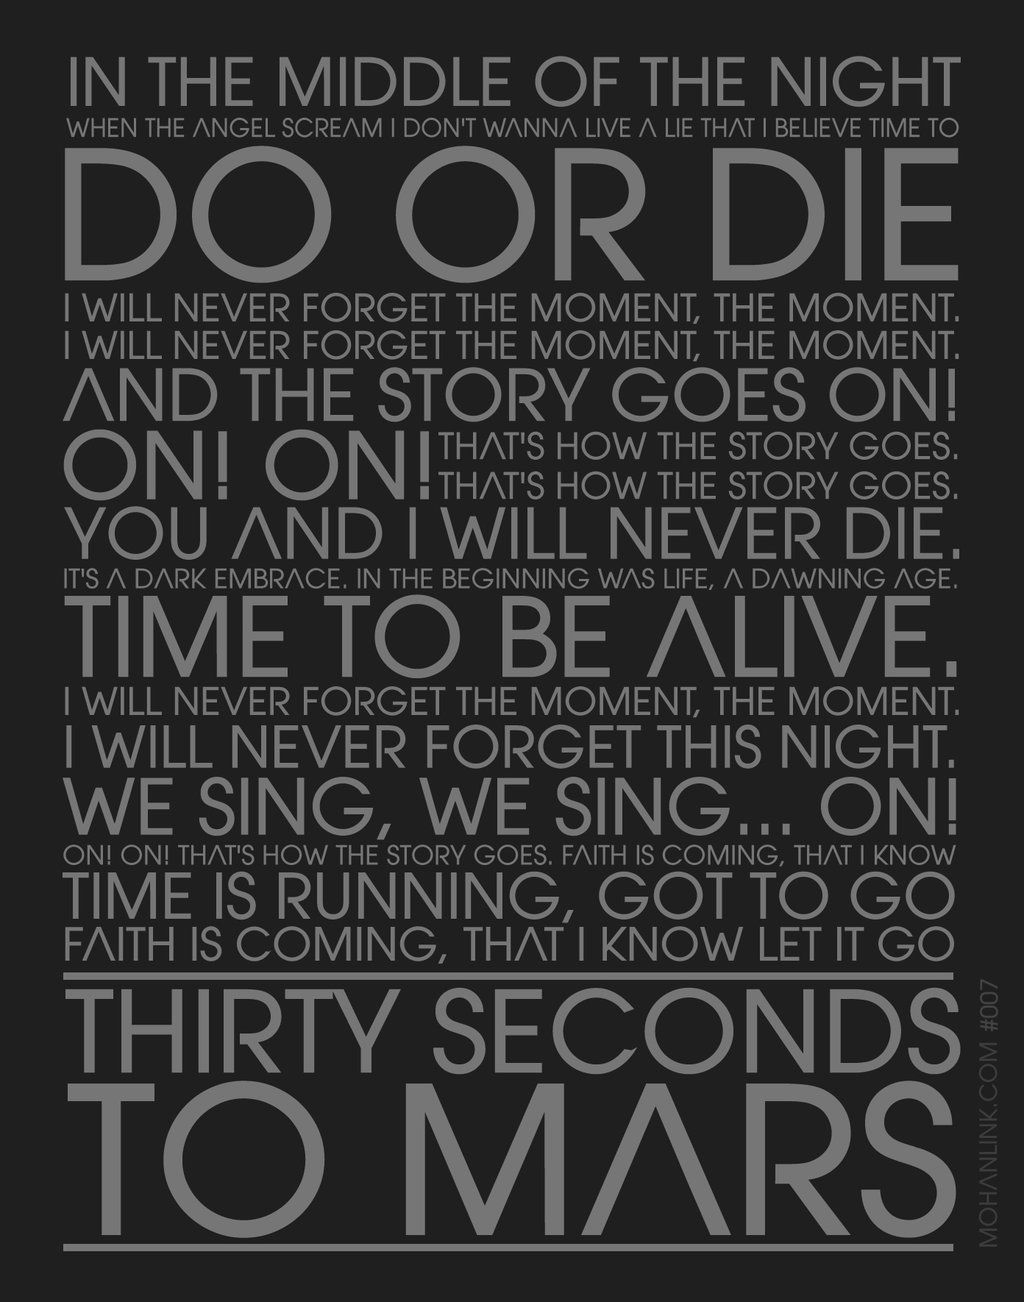 do or die lyric art 30 seconds to mars by mohanlink deviantart